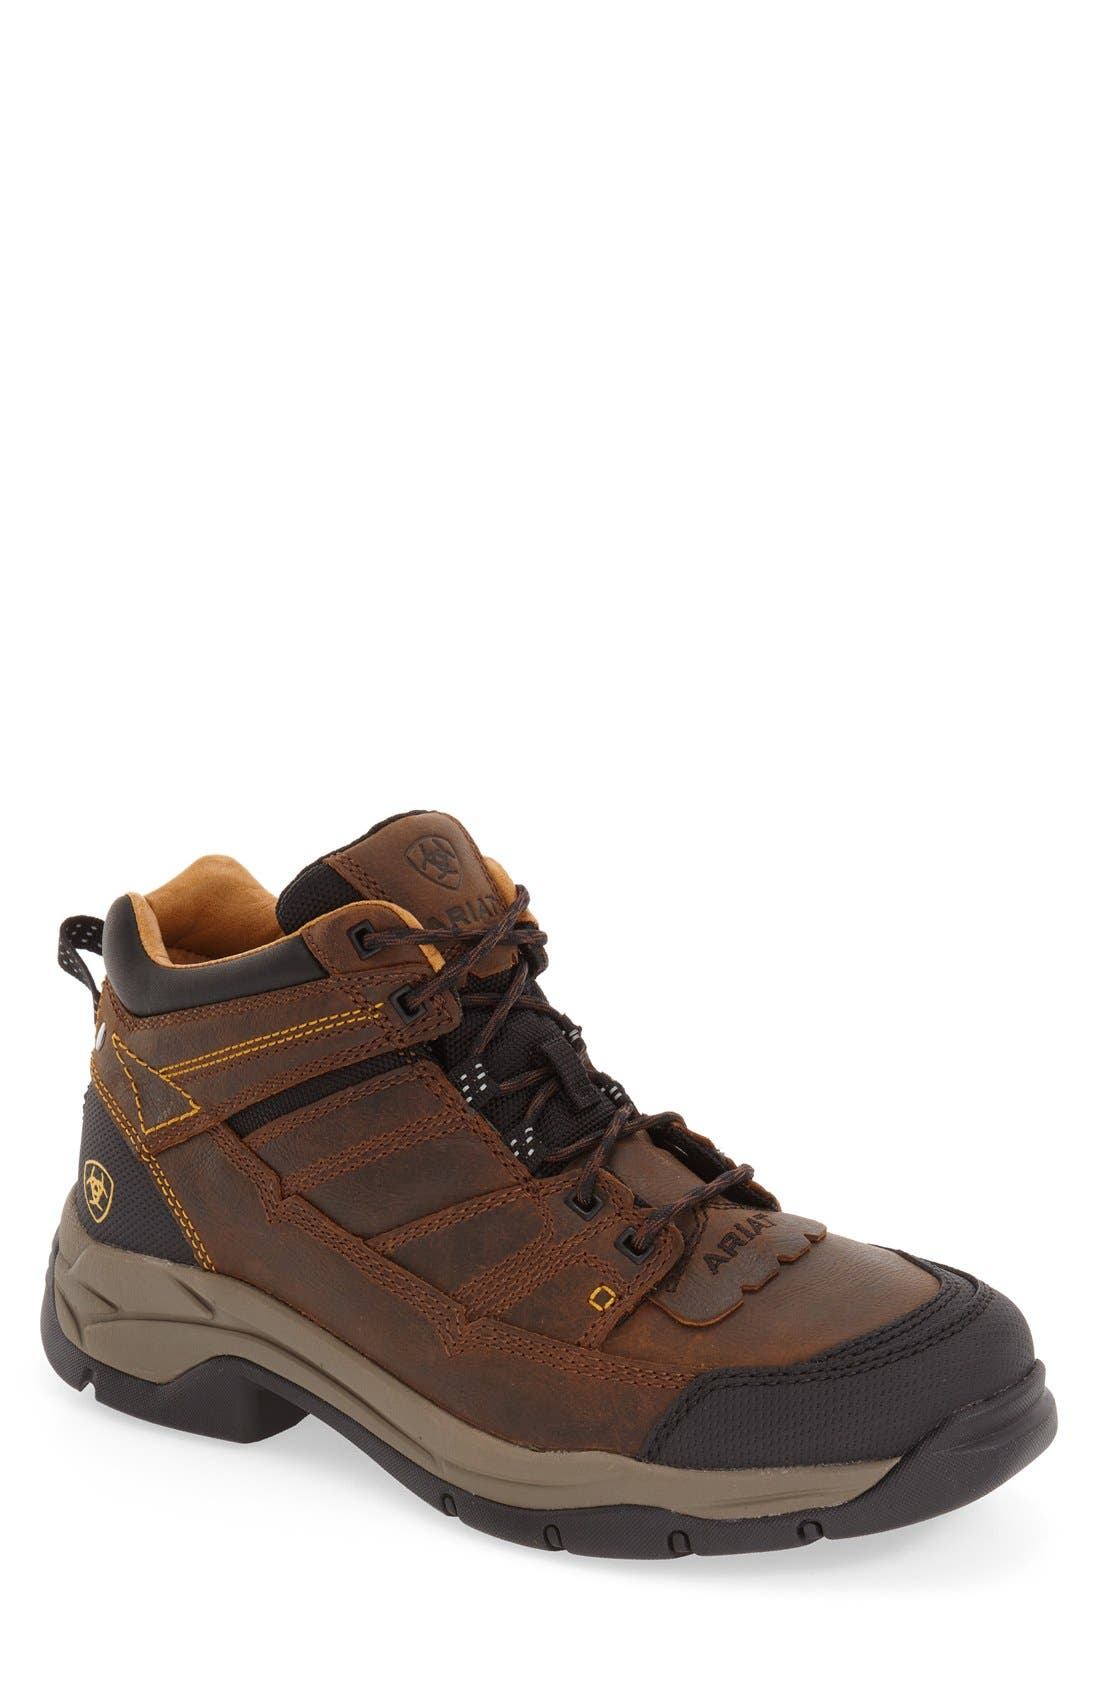 Alternate Image 1 Selected - Ariat 'Terrain Pro' Waterproof Hiking Boot (Men)